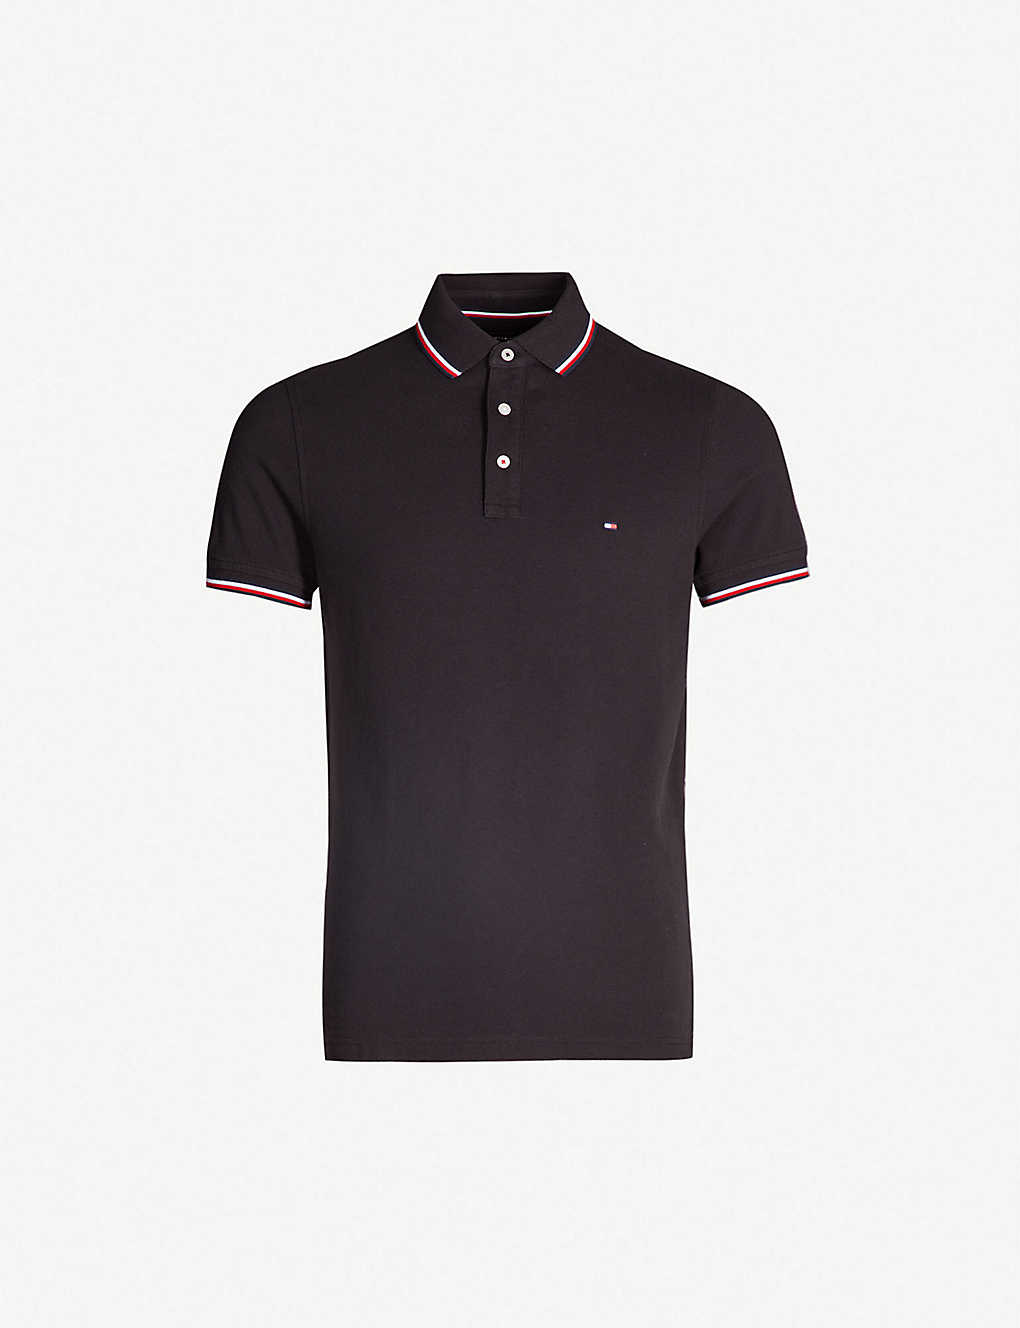 21c24037 TOMMY HILFIGER - Logo-embroidered cotton-piqué polo shirt ...